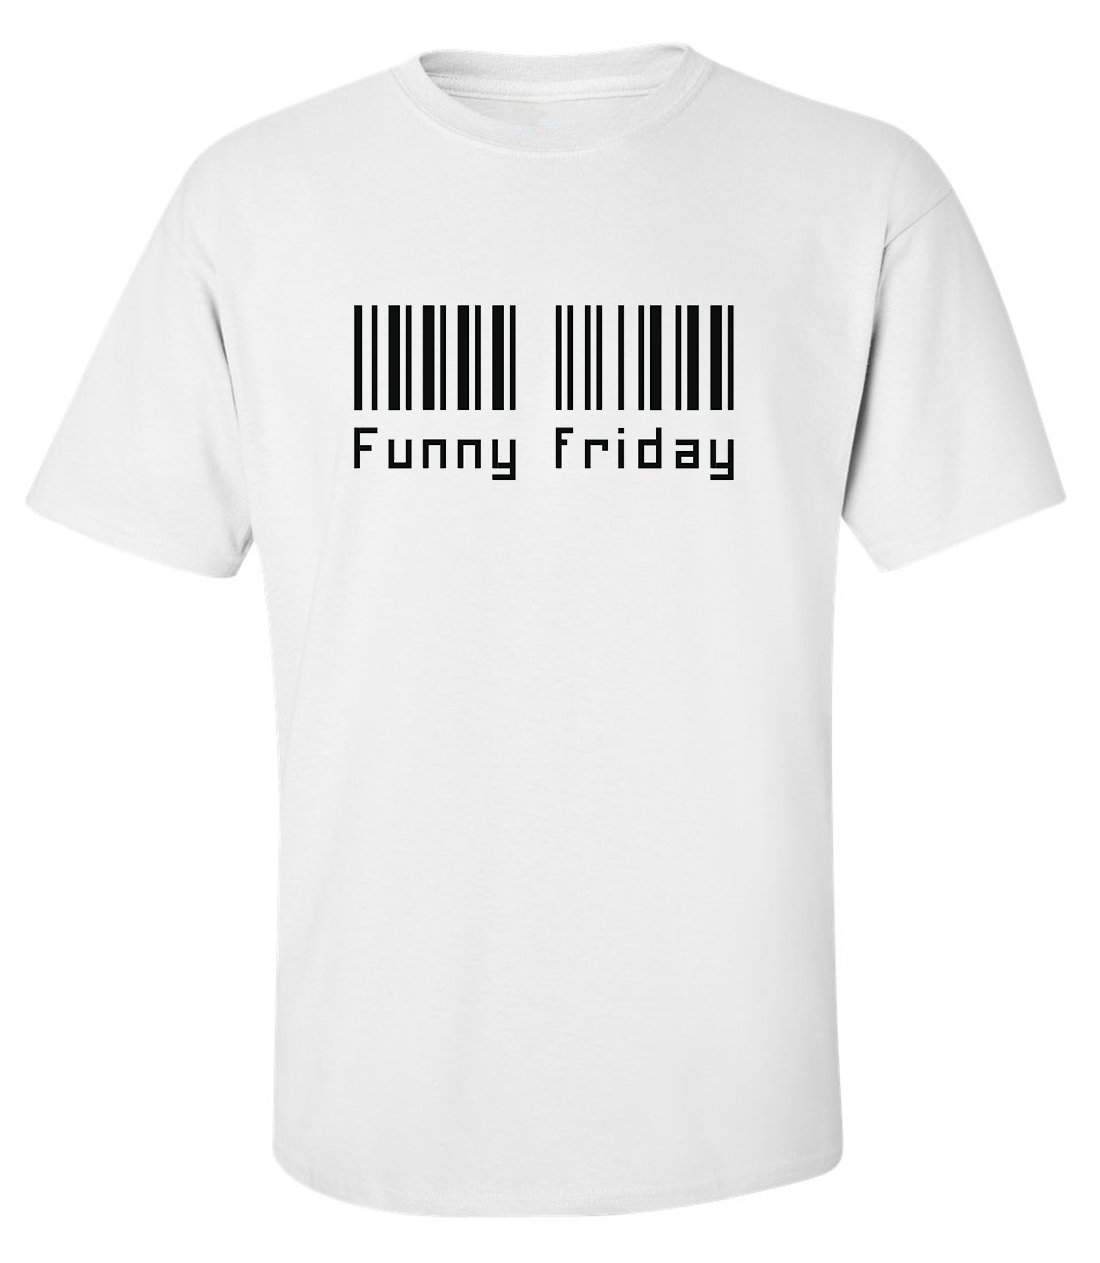 Funny friday bar code fashioned men printed white cotton t-shirt size L